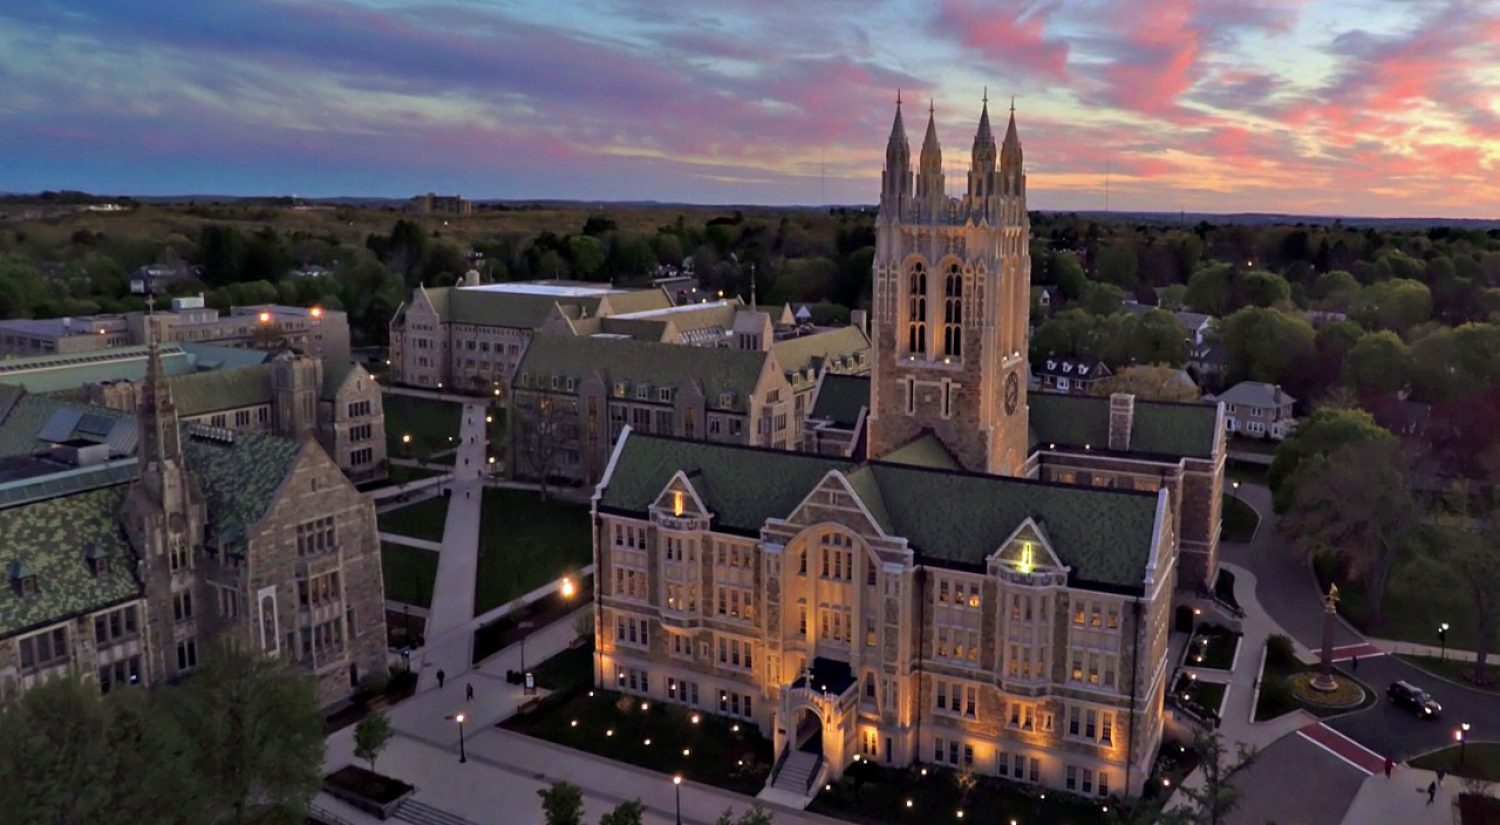 Gasson at sunset